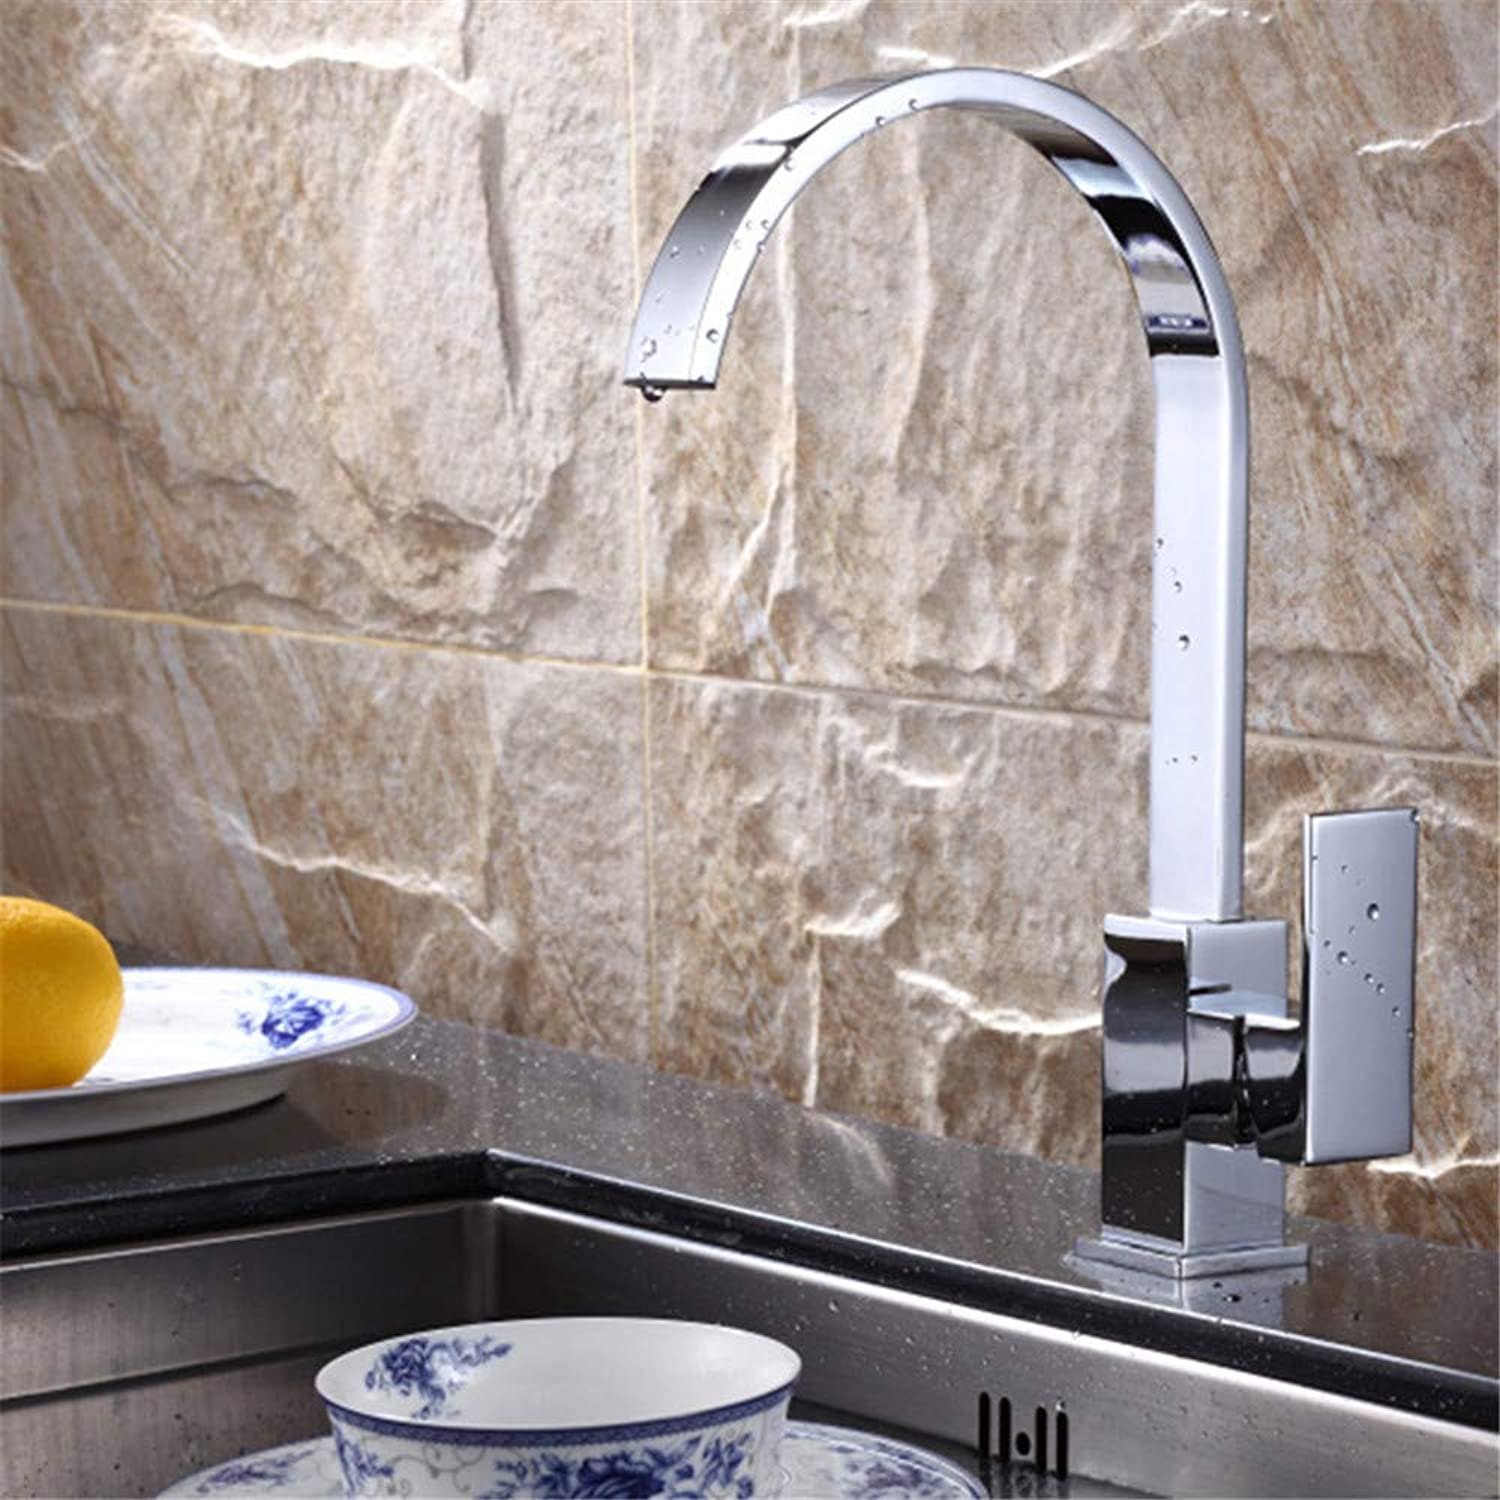 Copper Cold and Hot Water Mixer Kitchen Faucet Single Kitchen Sink Faucet Square Single Handle redary Chrome Plating Polishing